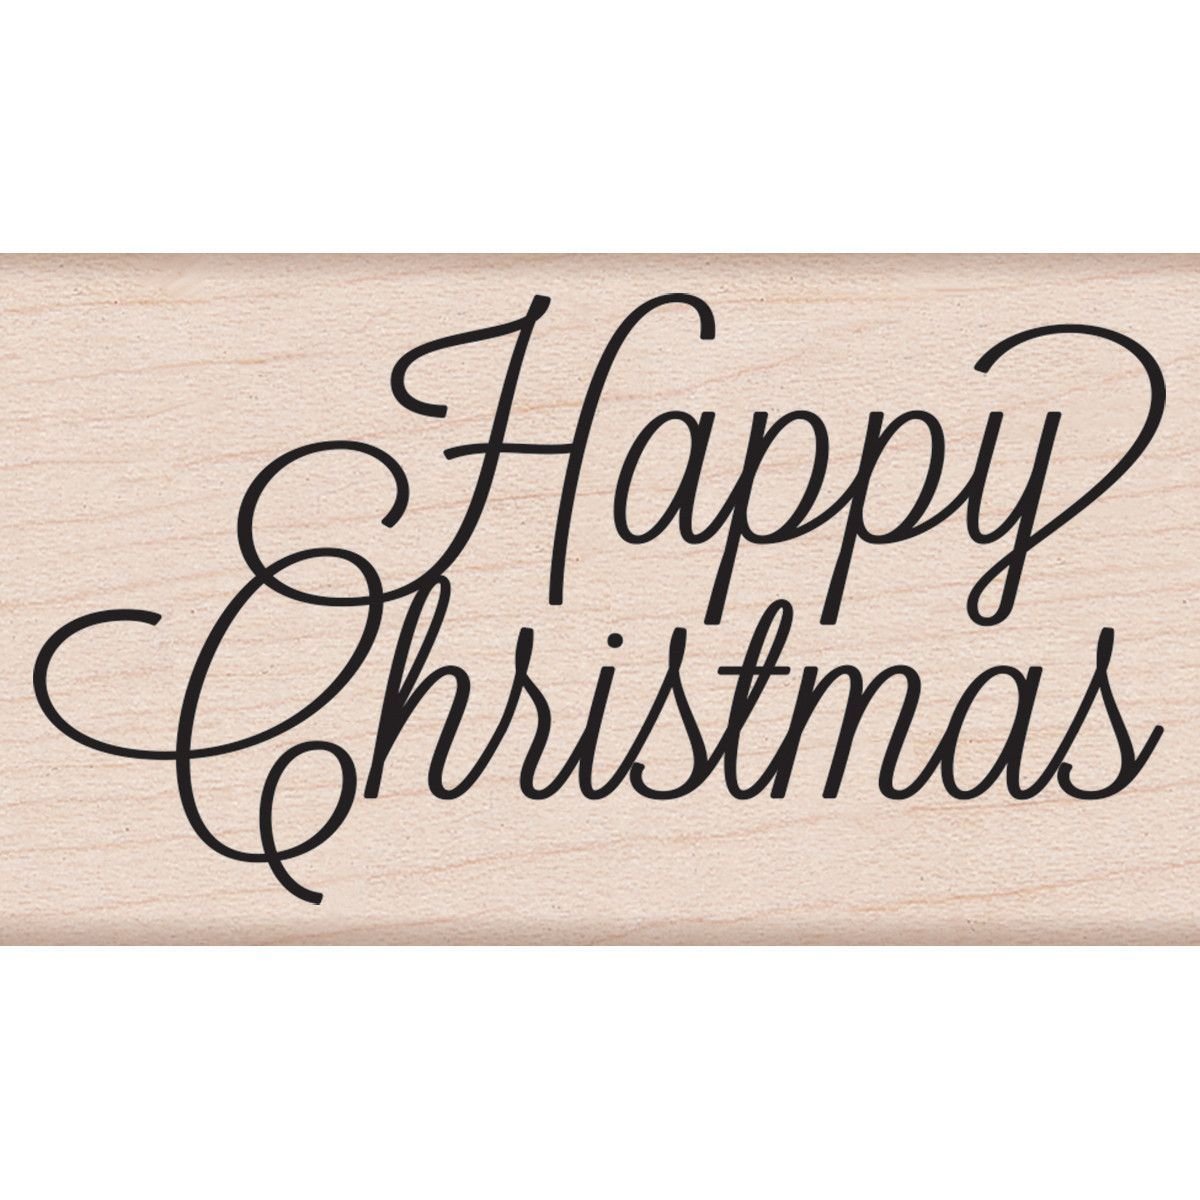 """Hero Arts Mounted Rubber Stamp 3.75""""x1.25"""" - Happy Christmas Script"""